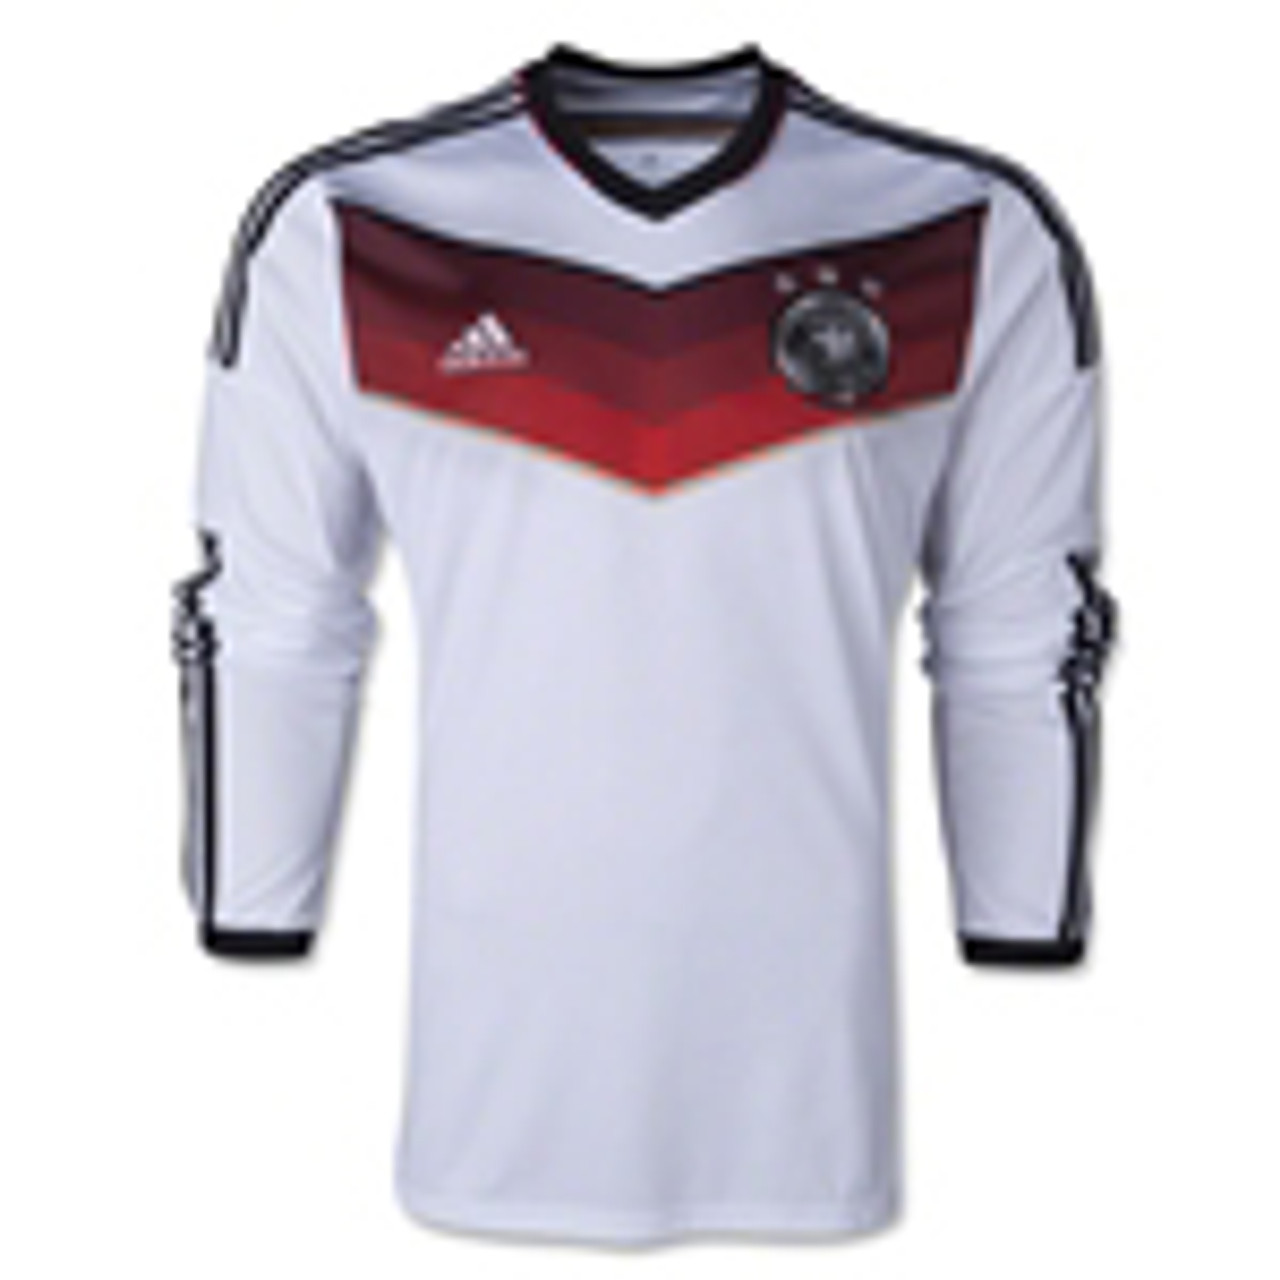 ADIDAS GERMANY 2014 HOME L/S JERSEY